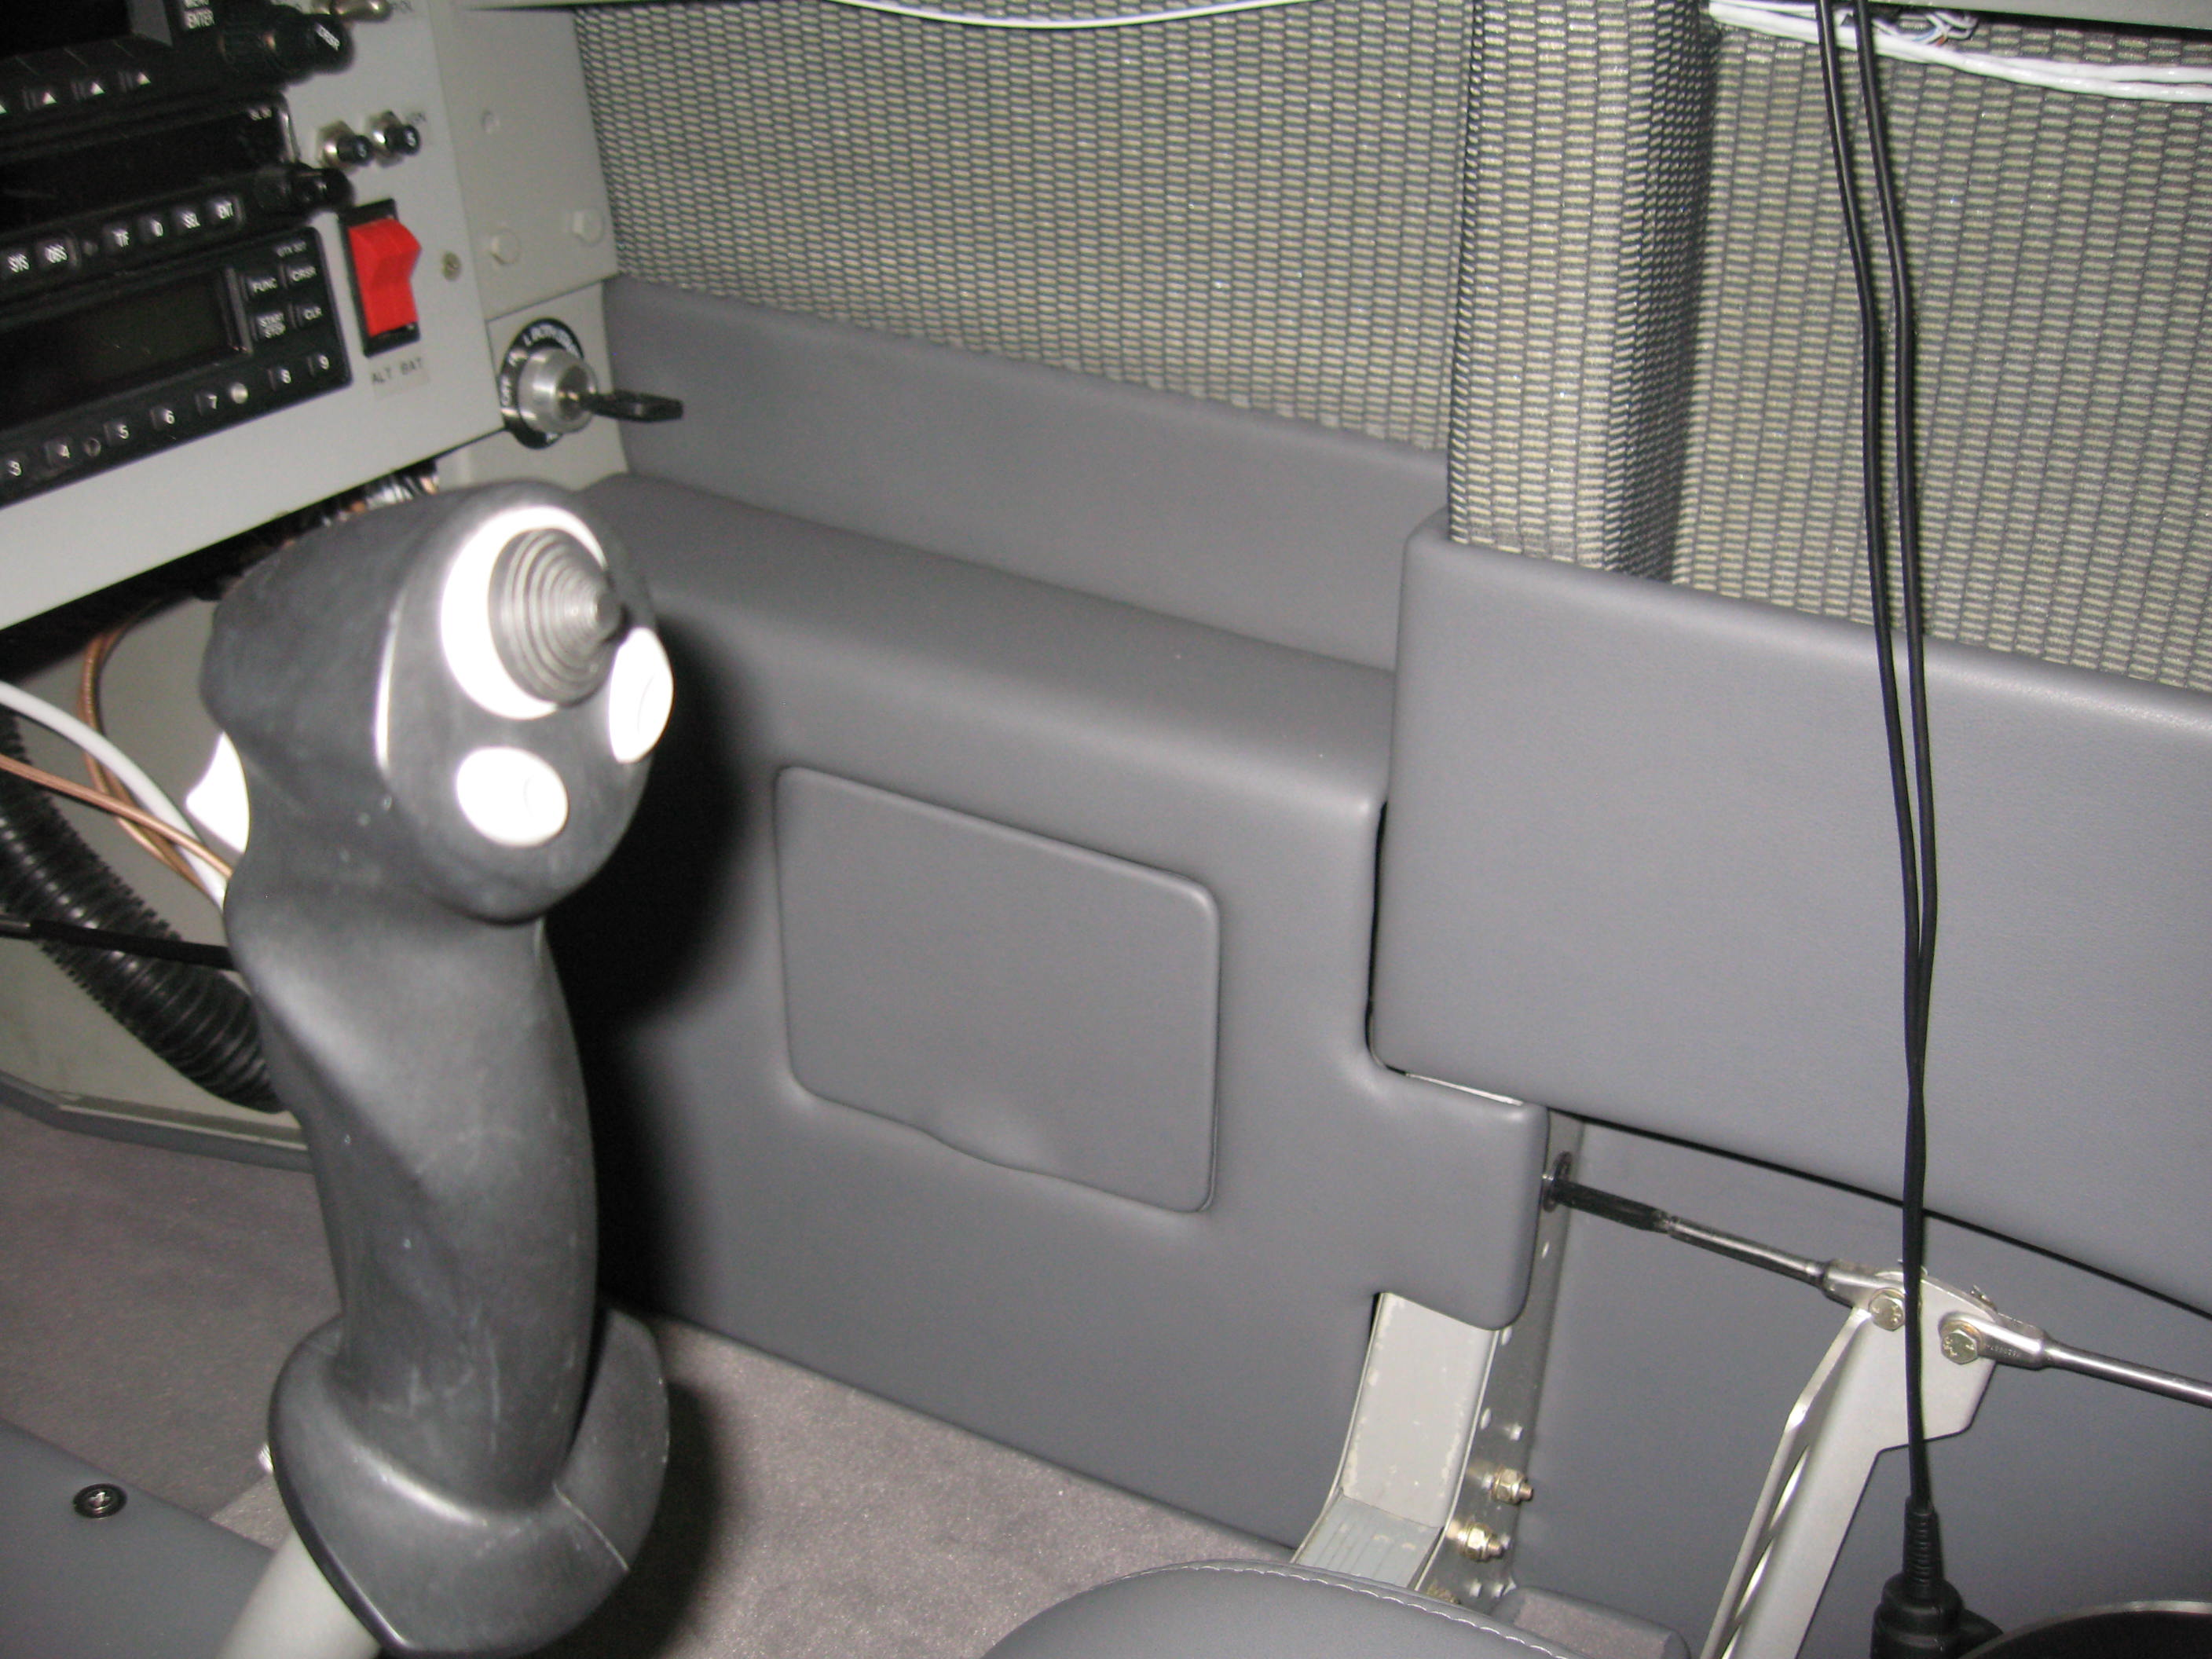 Right Side panel with fuse access cover